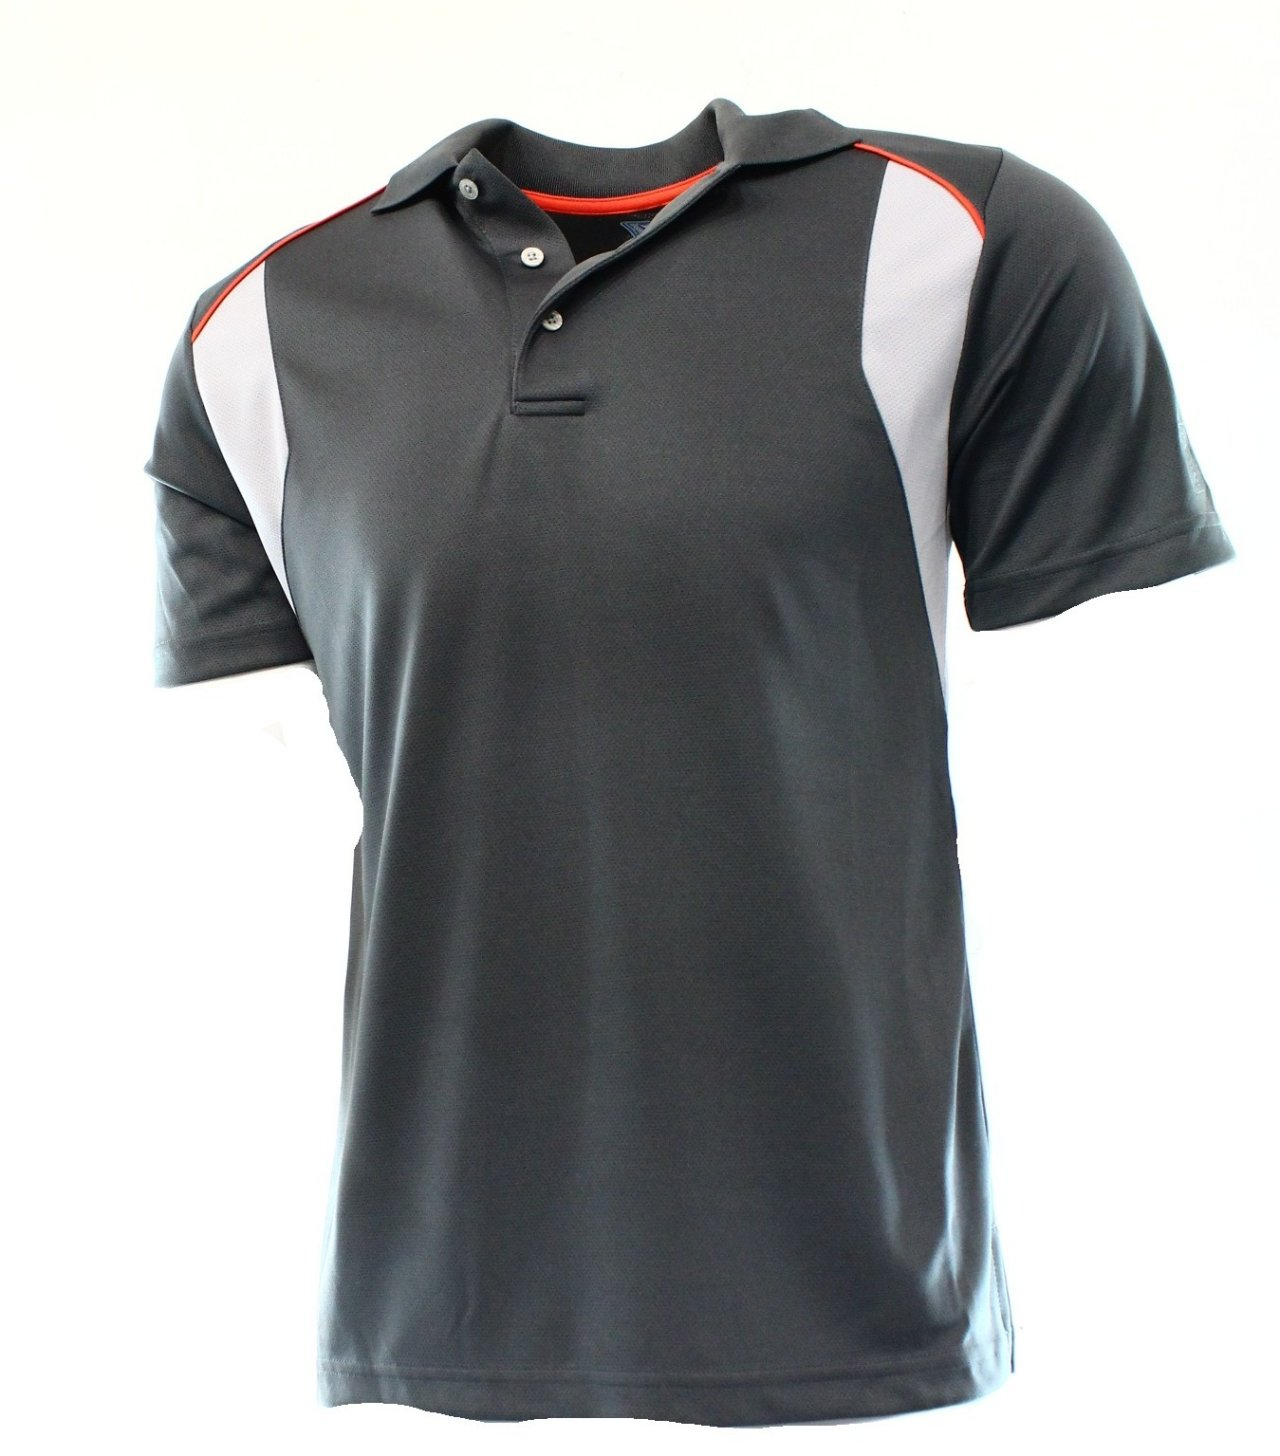 pga tour new dark gray airflux mens large l golf